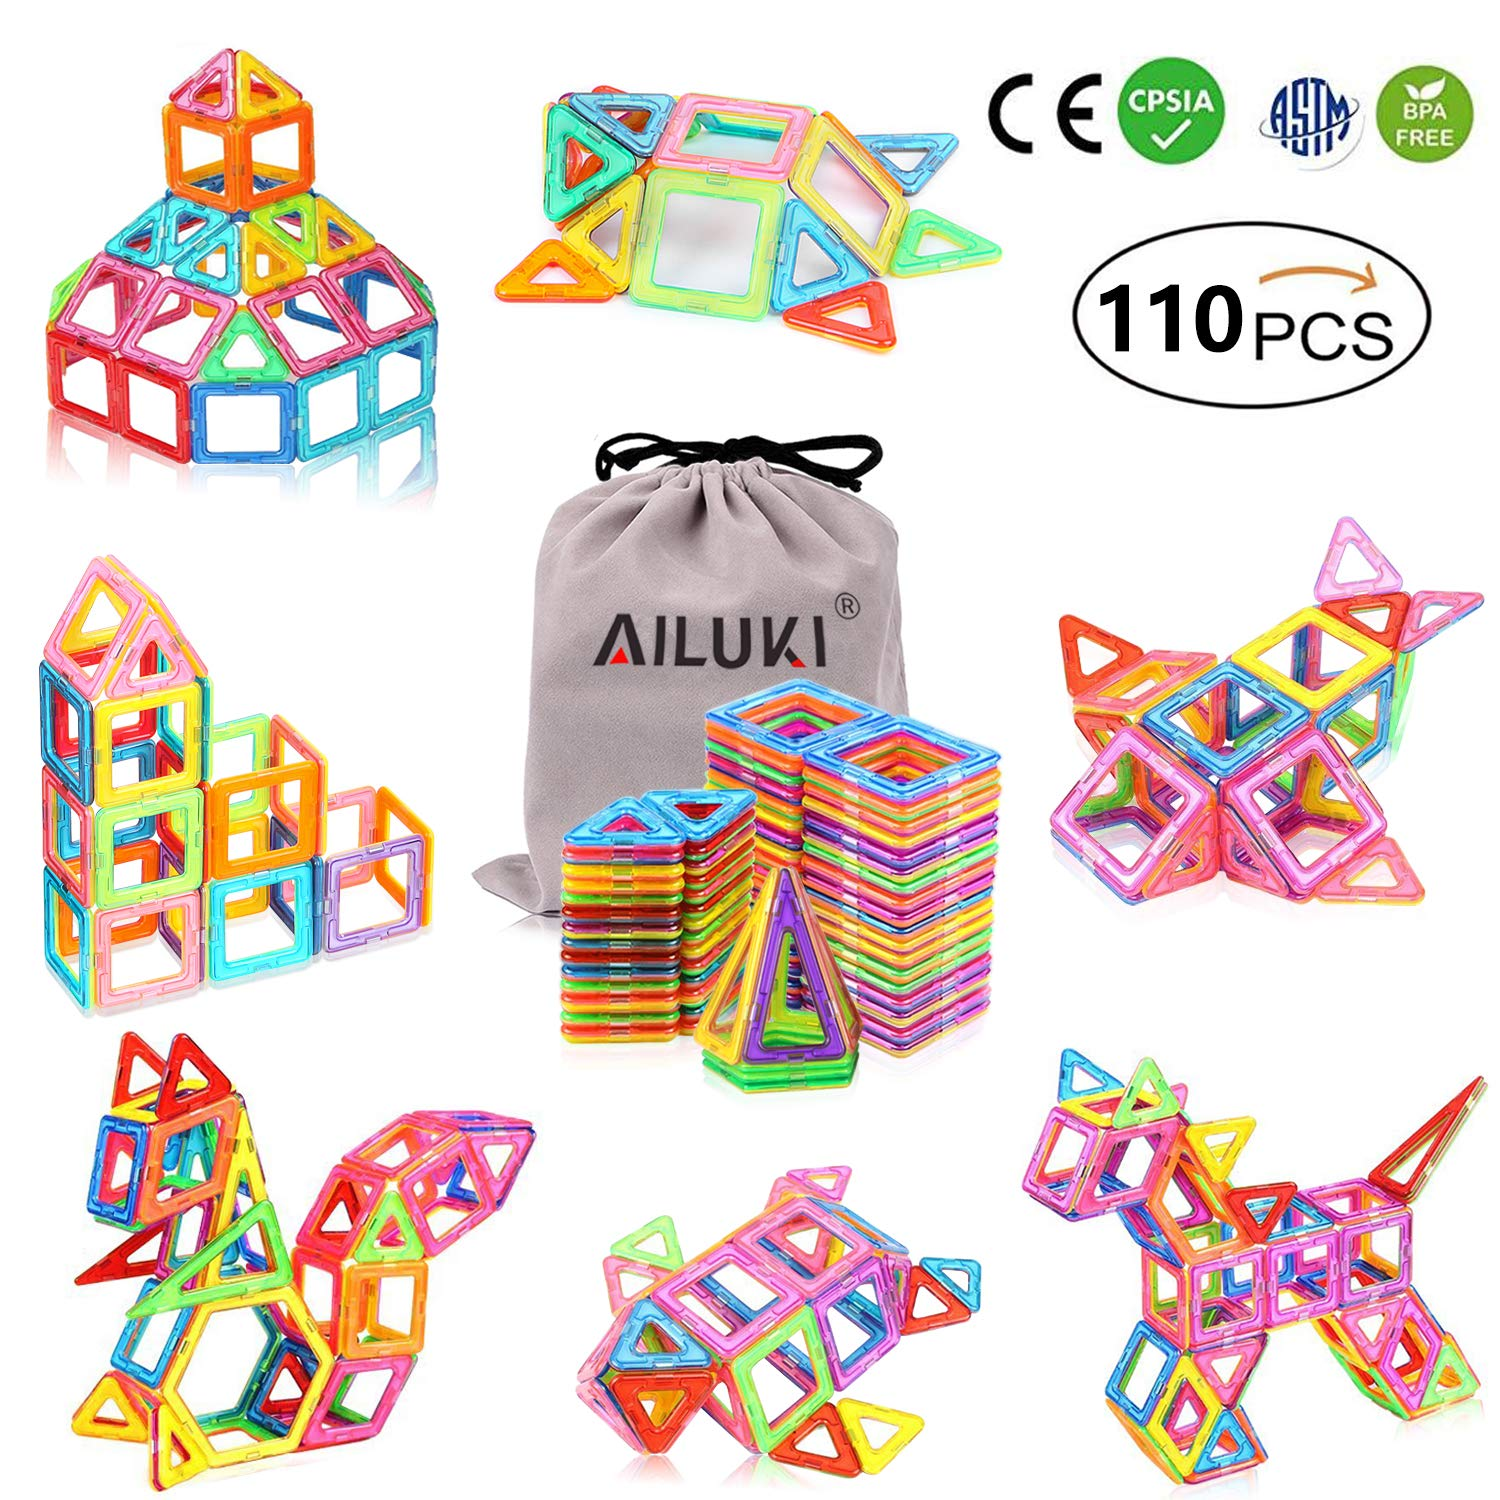 AILUKI 110 PCS Magnetic Blocks Building Set for Kids, Magnetic Tiles Preschool Educational Construction Kit Toys for Girls & Boys by AILUKI